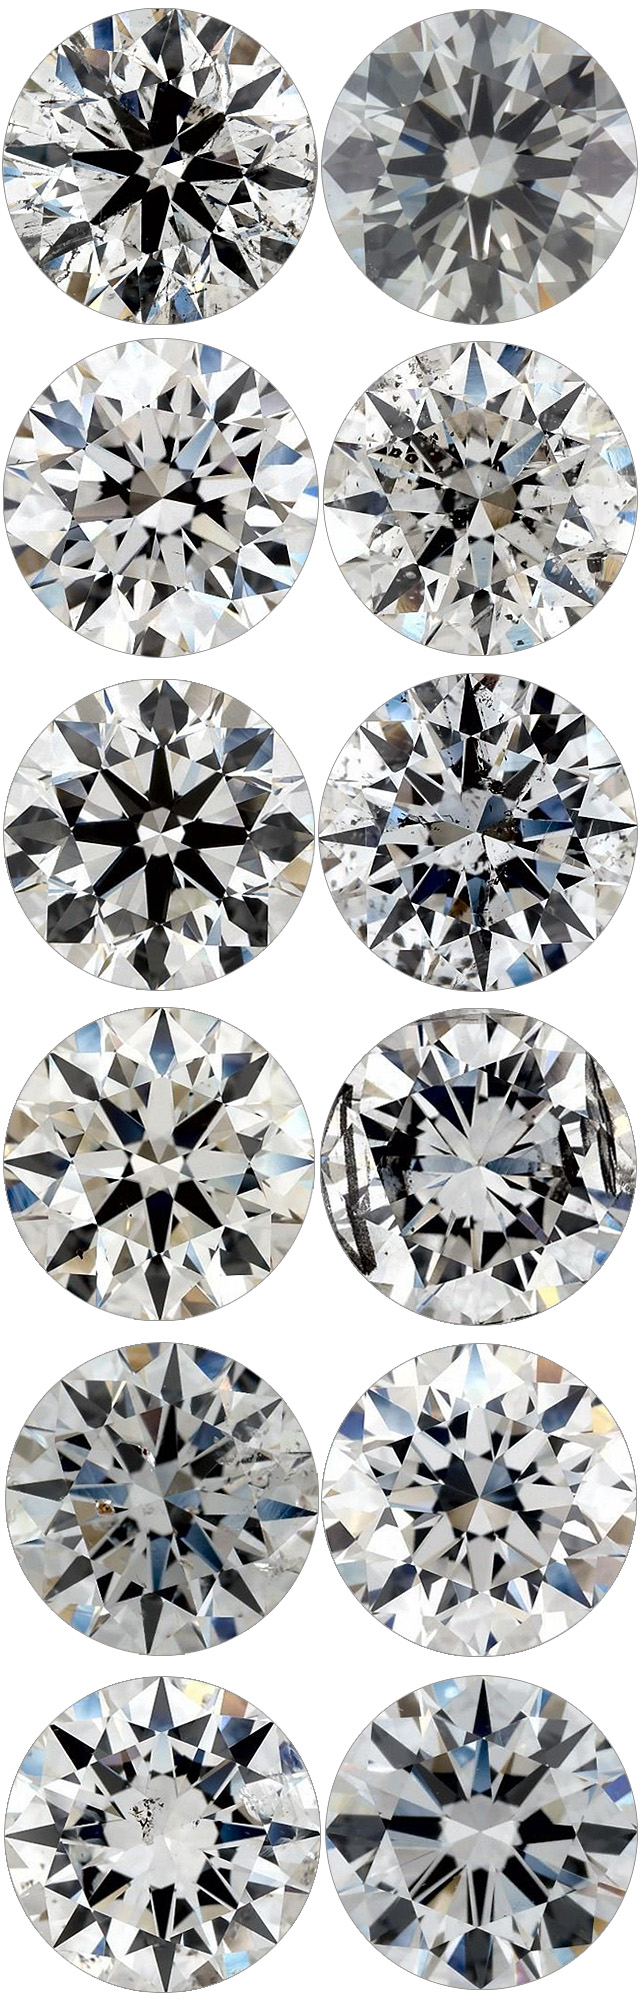 What Do All These Diamonds Have In Common